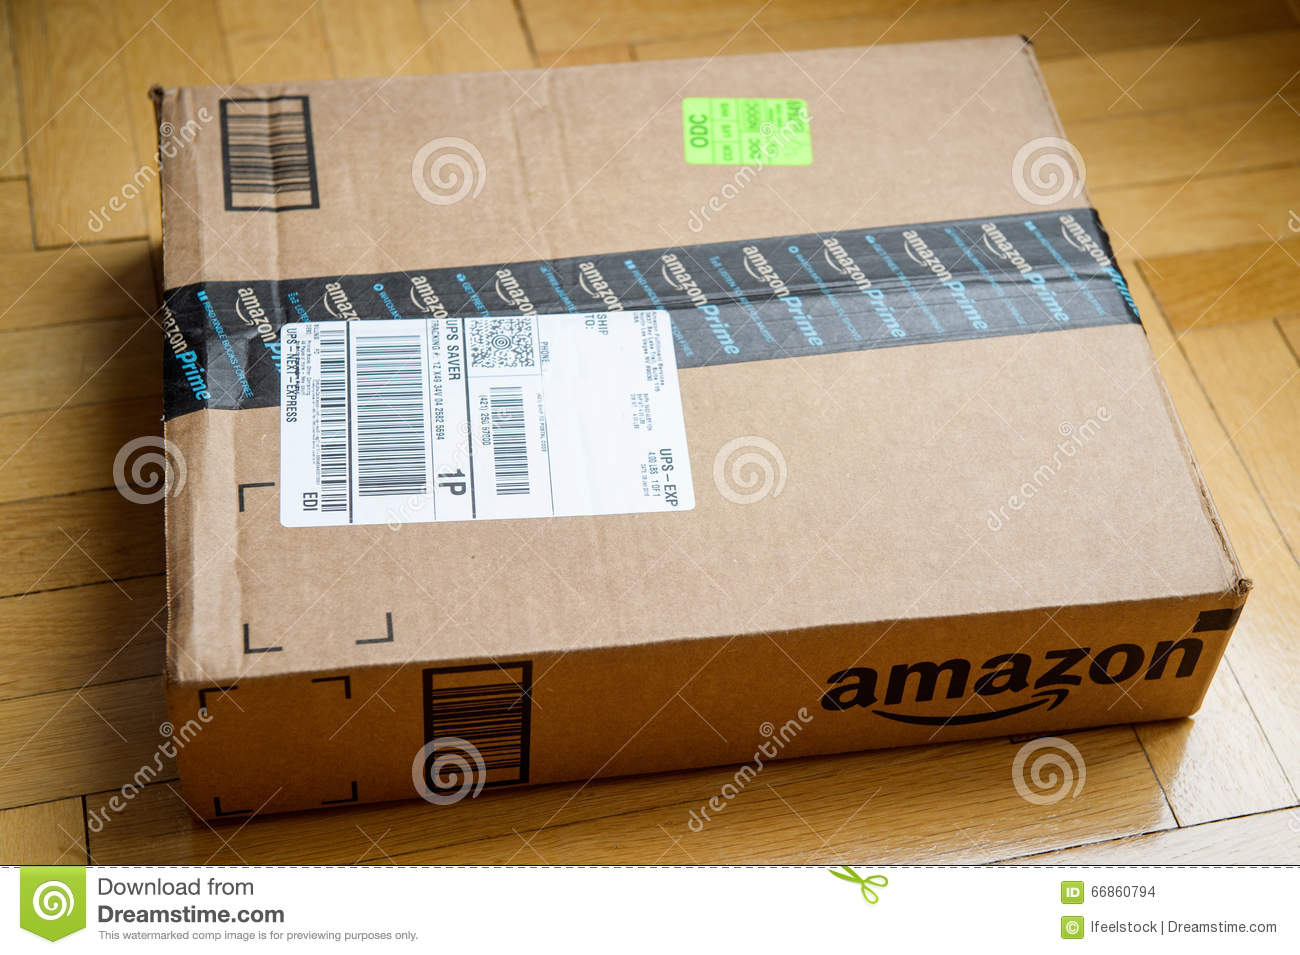 amazon box on wooden floor editorial stock image image 66860794. Black Bedroom Furniture Sets. Home Design Ideas